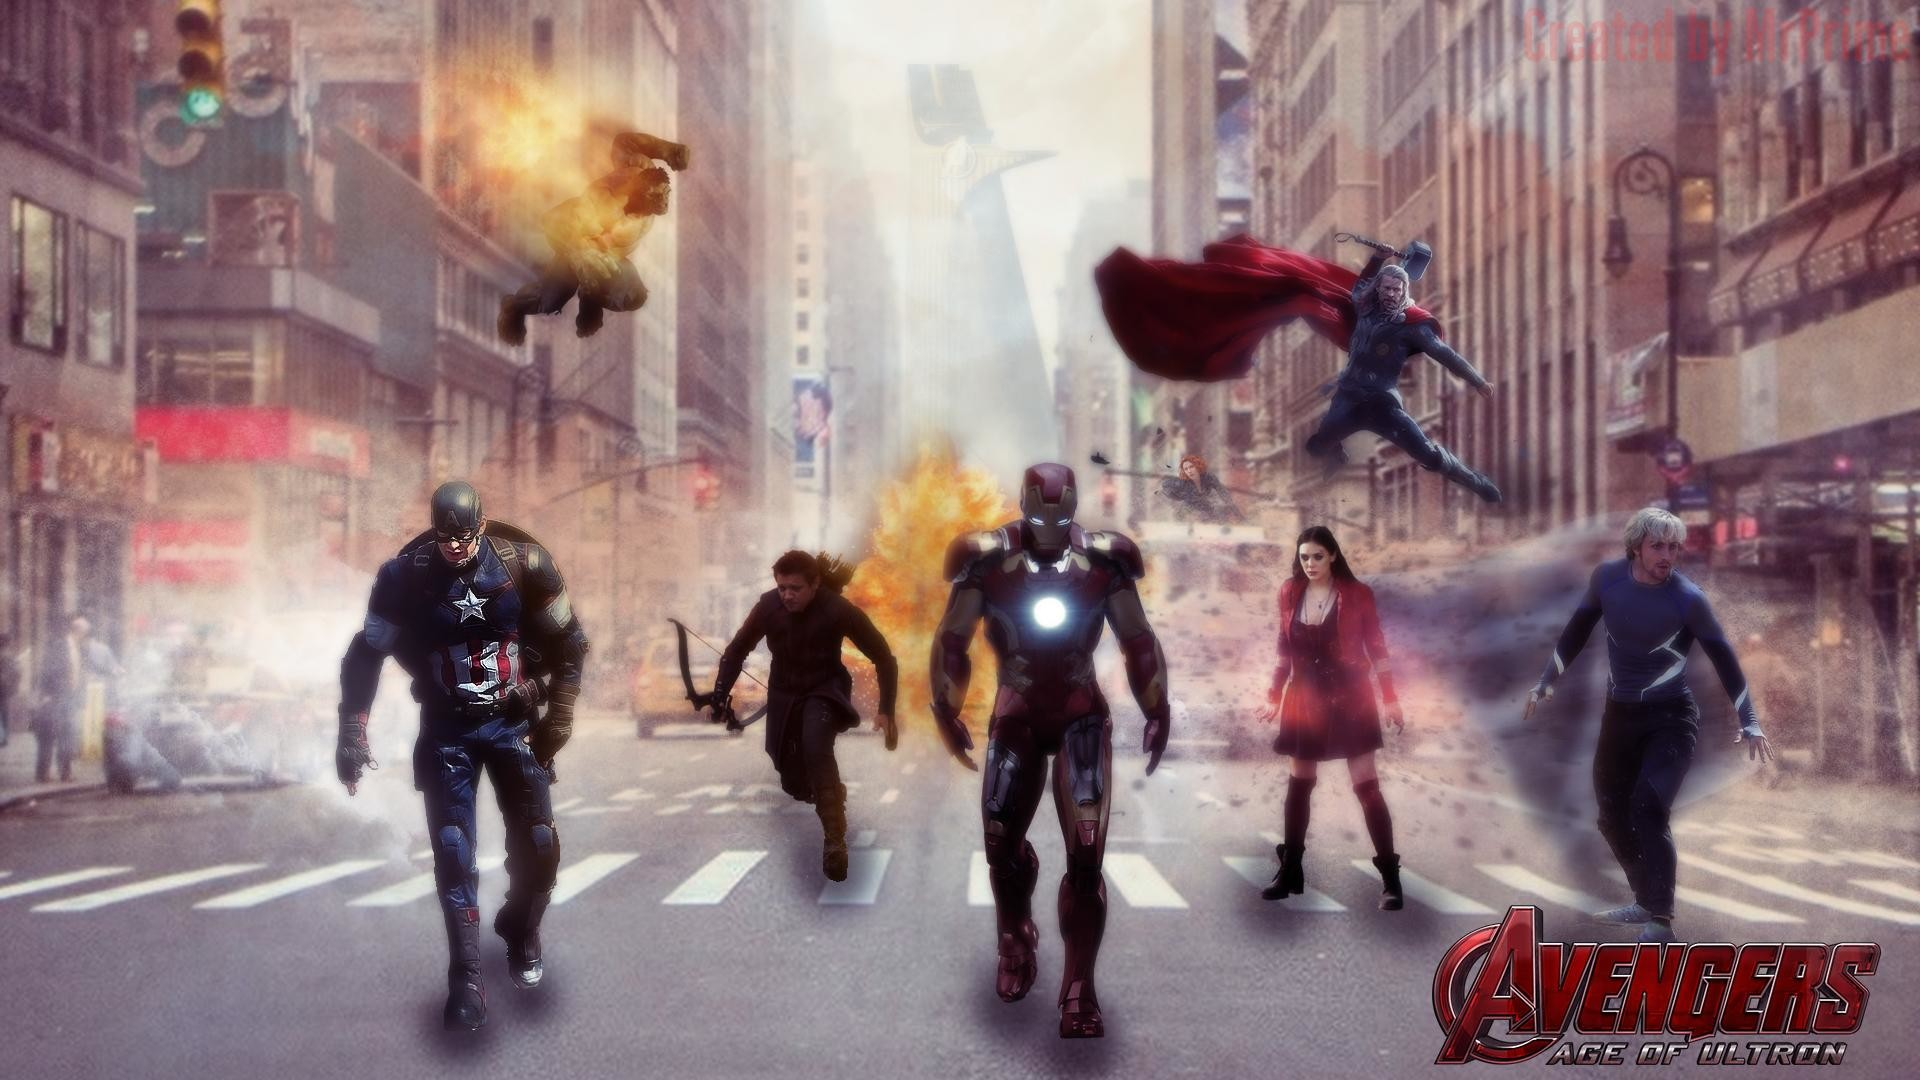 Avengers Age Of Ultron Wallpapers High Quality Resolution